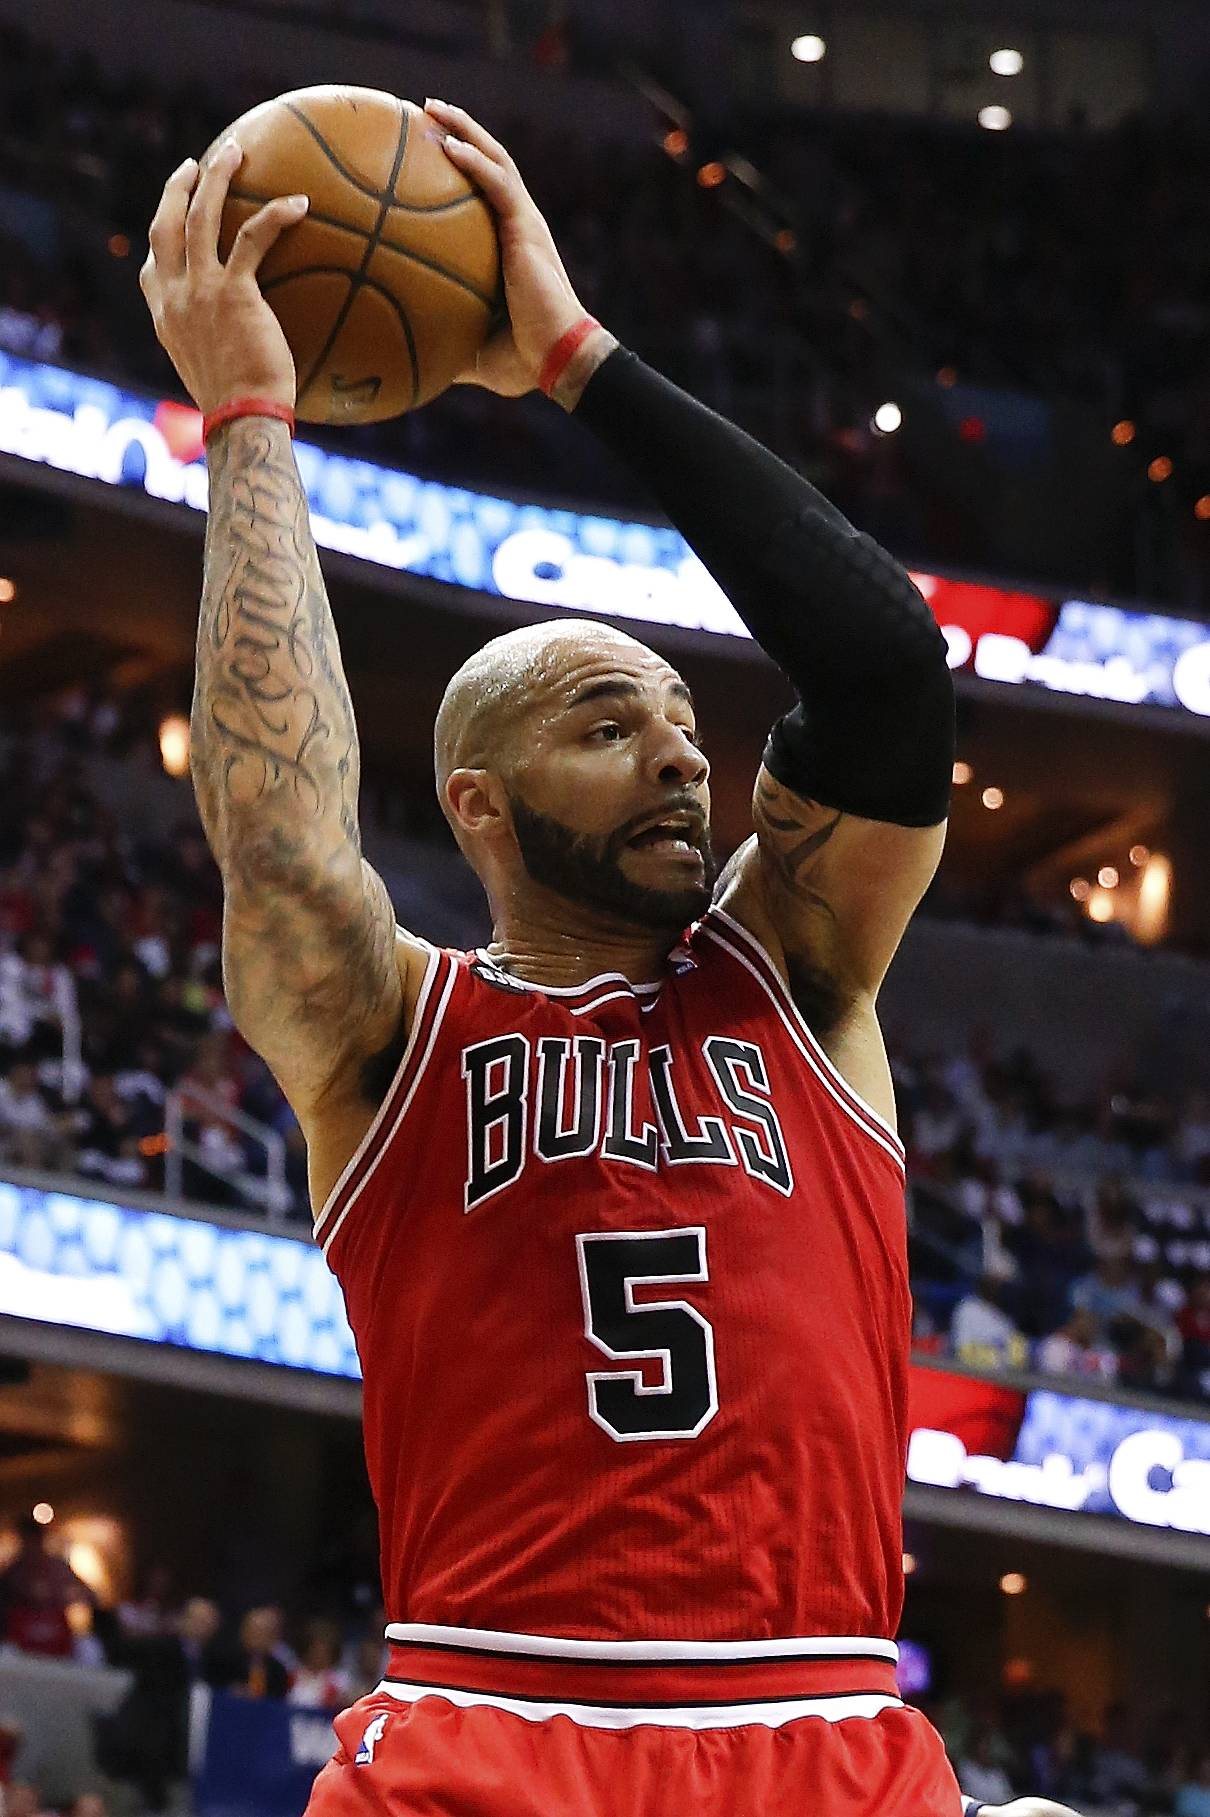 Officially, the Bulls have made no decision on Carlos Boozer's future. But there is no roster flexibility this summer if they don't trade him or use the amnesty clause — which is why it seems to be a certainty, according to Mike McGraw.